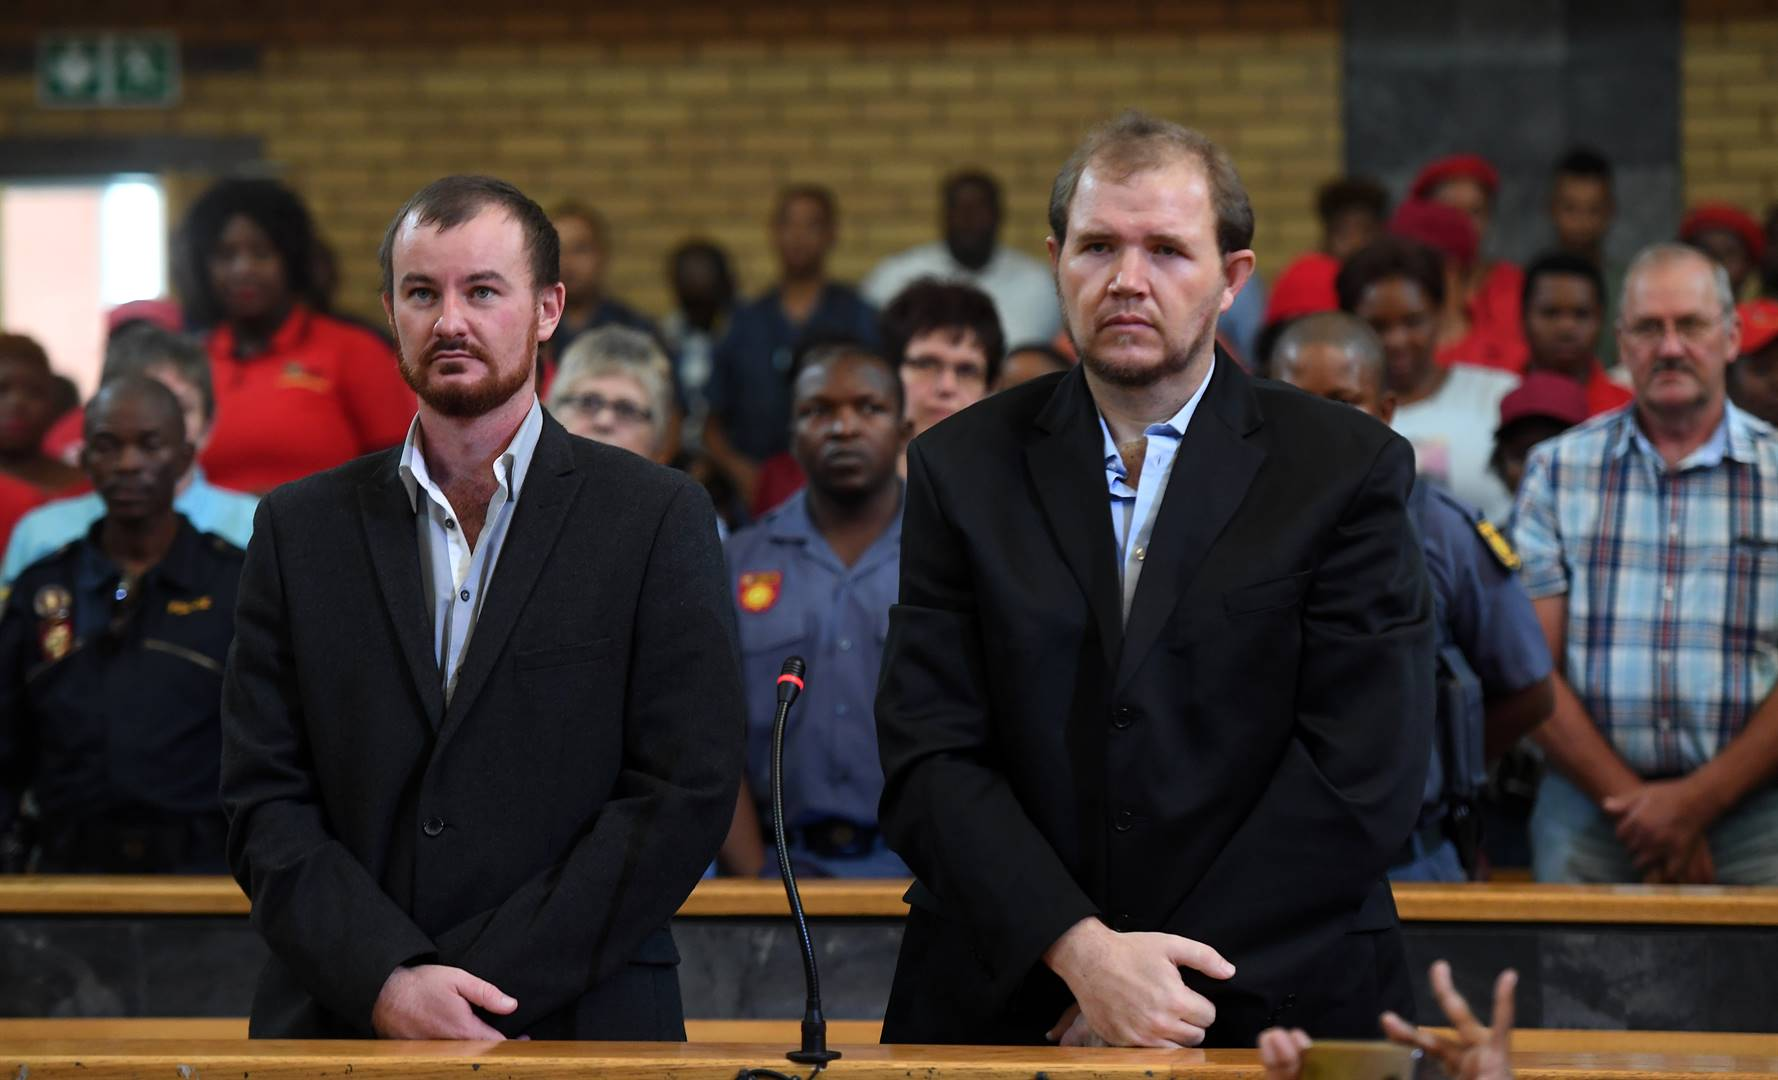 No decision on whether NPA will appeal the Coligny judgment | News24